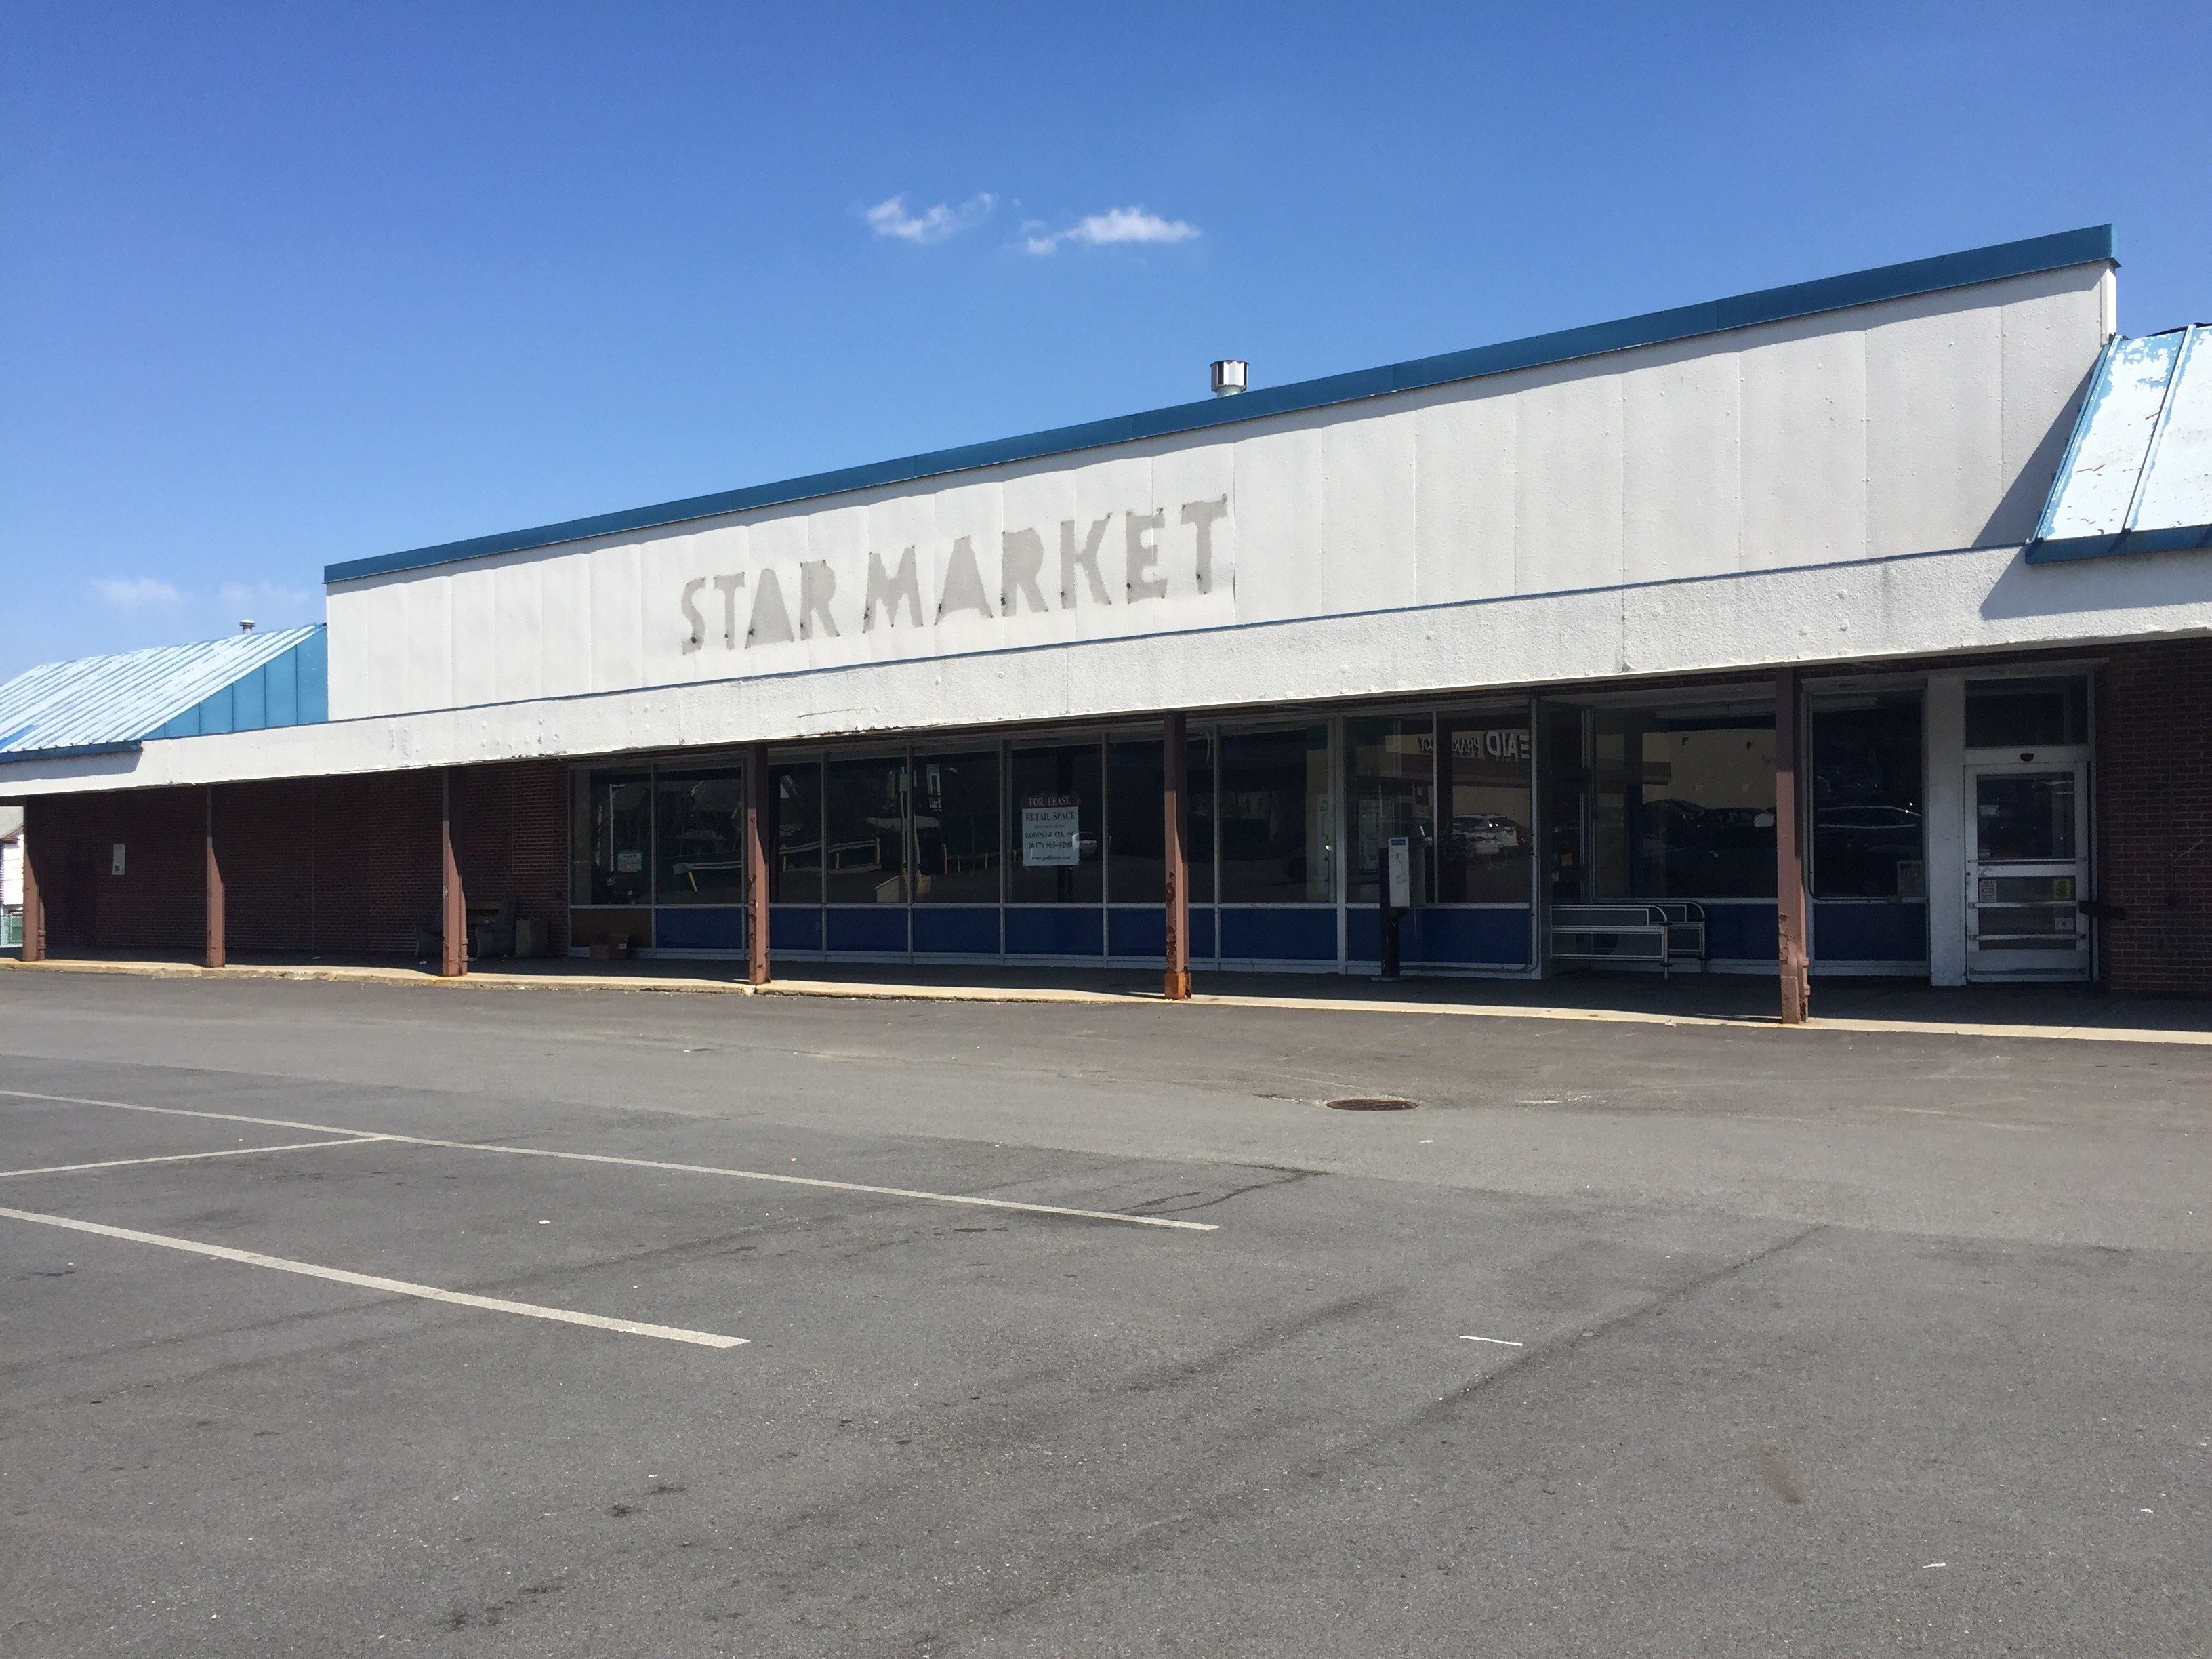 Somerville Meeting Future of Vacant Star Market Site at 299